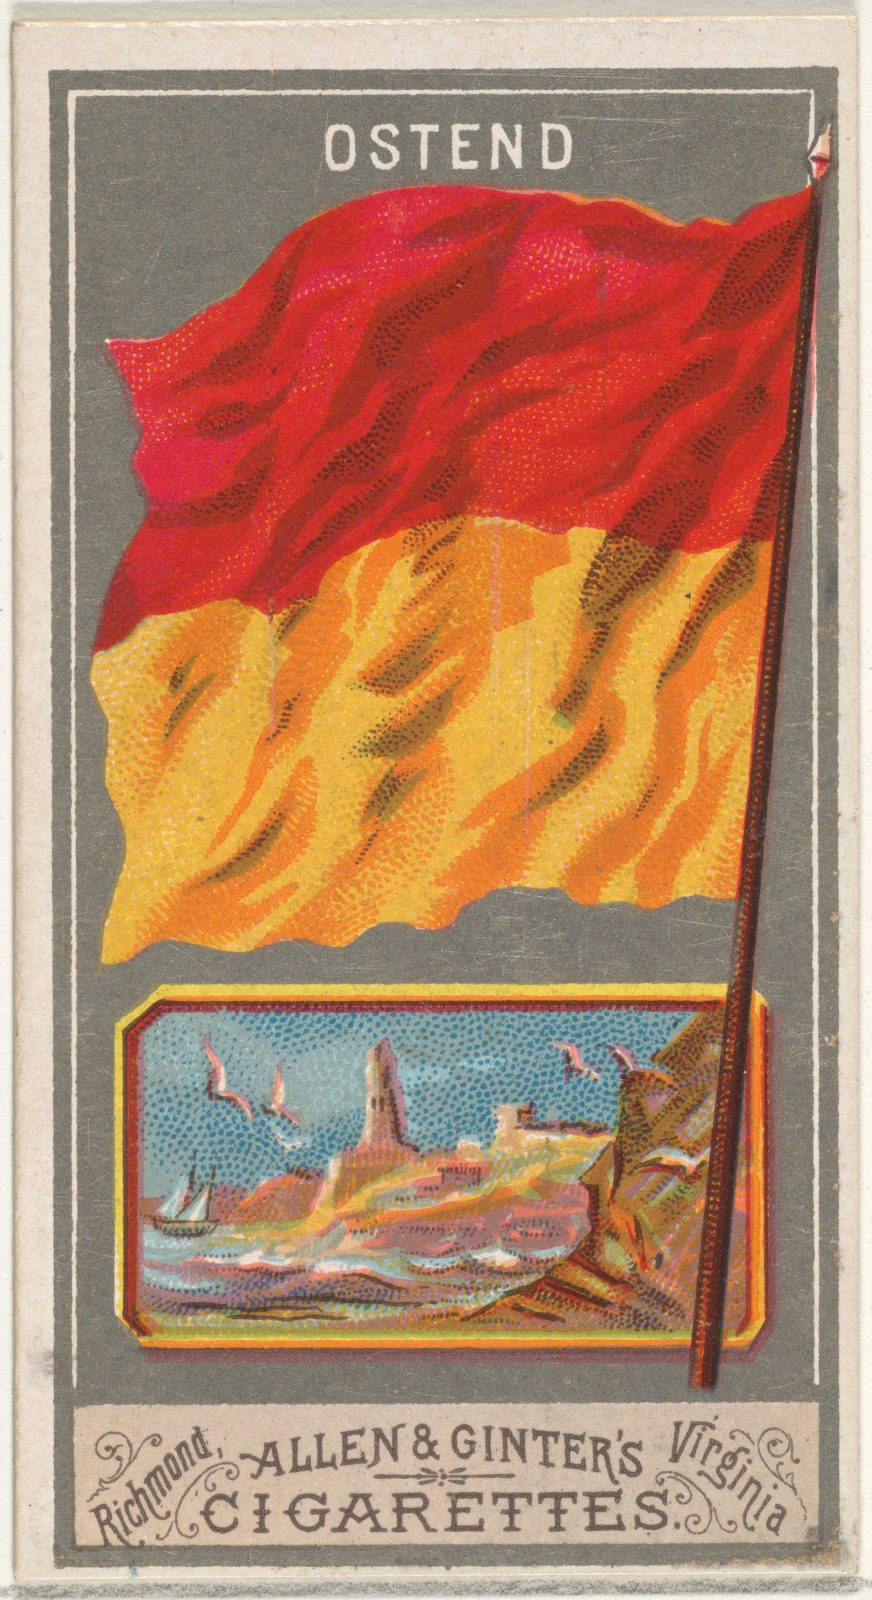 Ostend, from the City Flags series (N6) for Allen & Ginter Cigarettes Brands